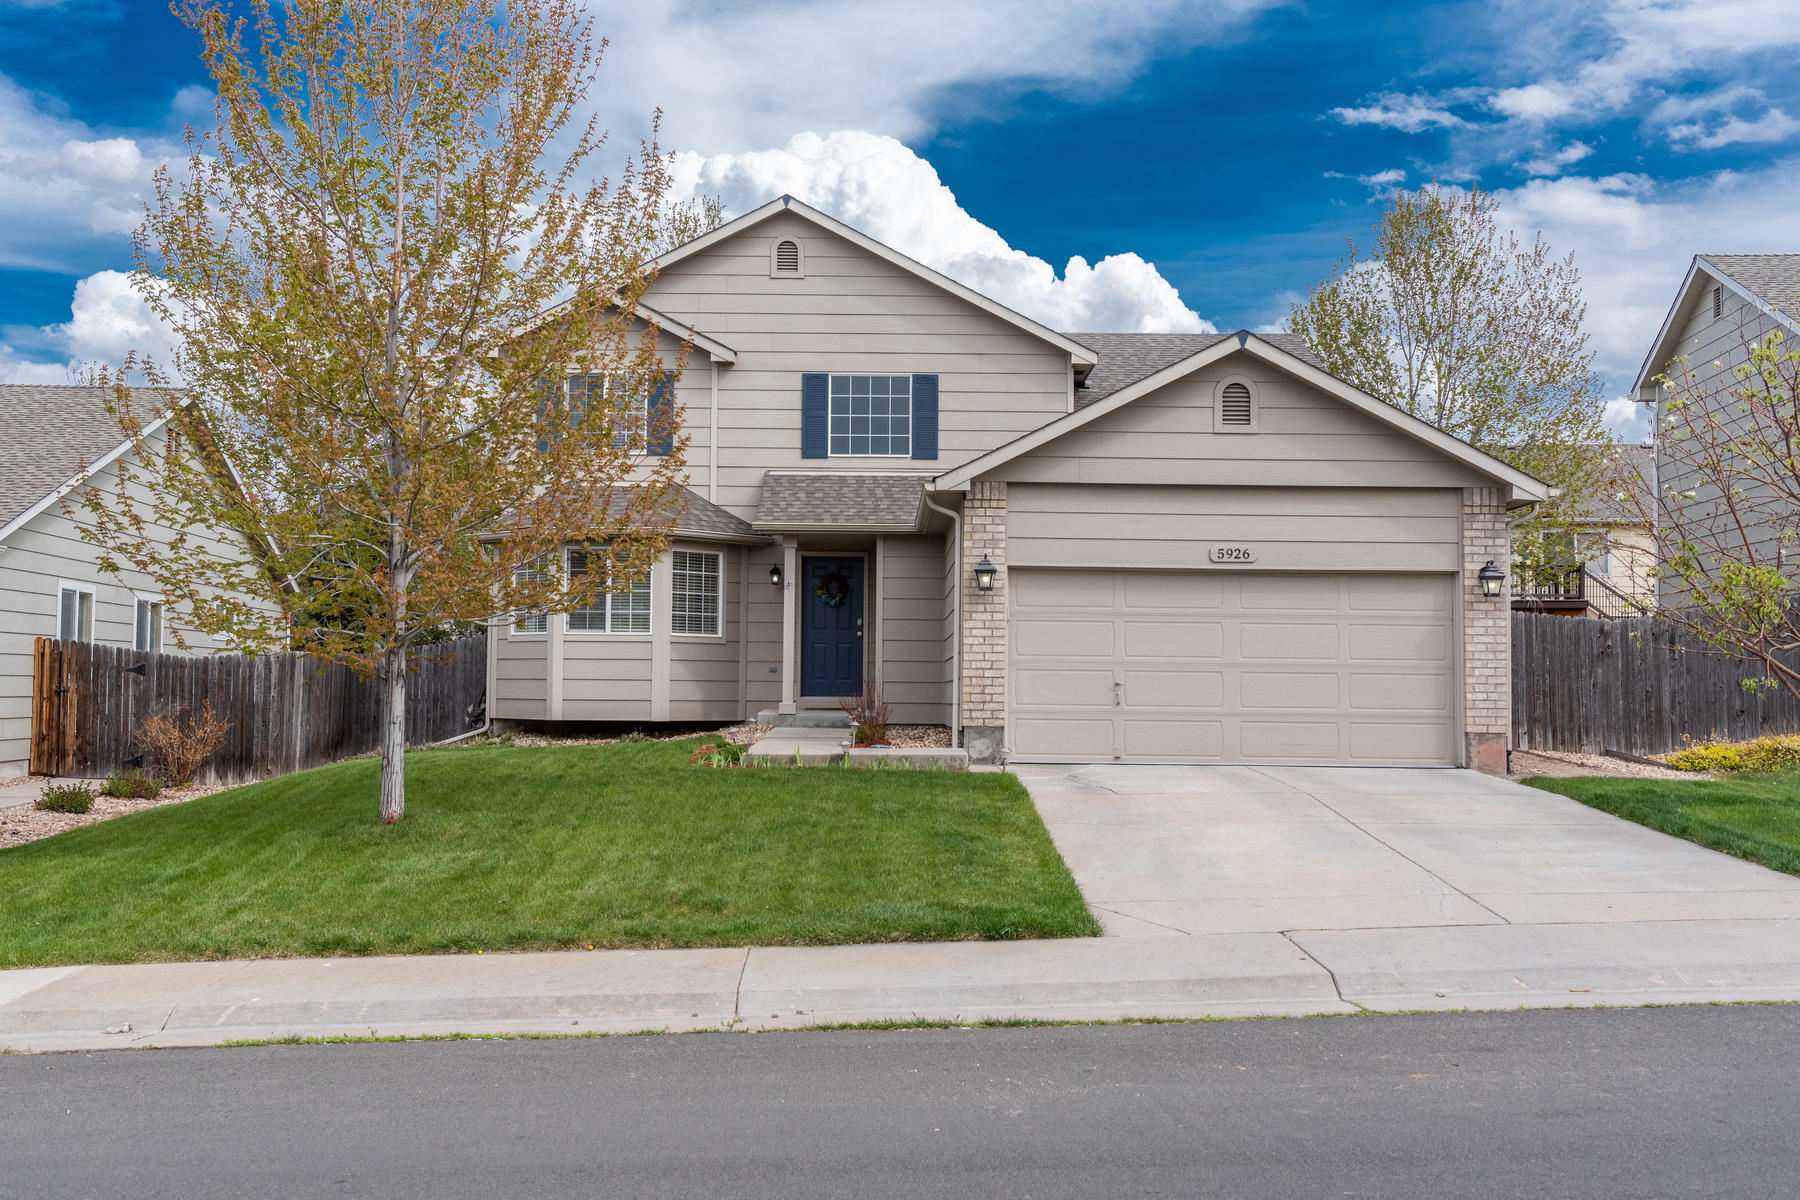 Single Family Homes for Sale at Move in ready! This immaculately kept home has plenty of space for everyone! 5926 S Quatar Way, Aurora, Colorado 80015 United States